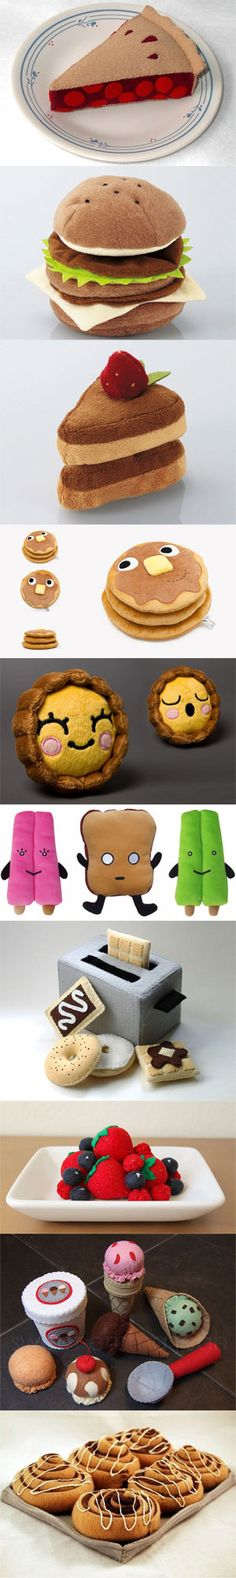 A Nice Gallery of Overly Cute Plush Food Toys More